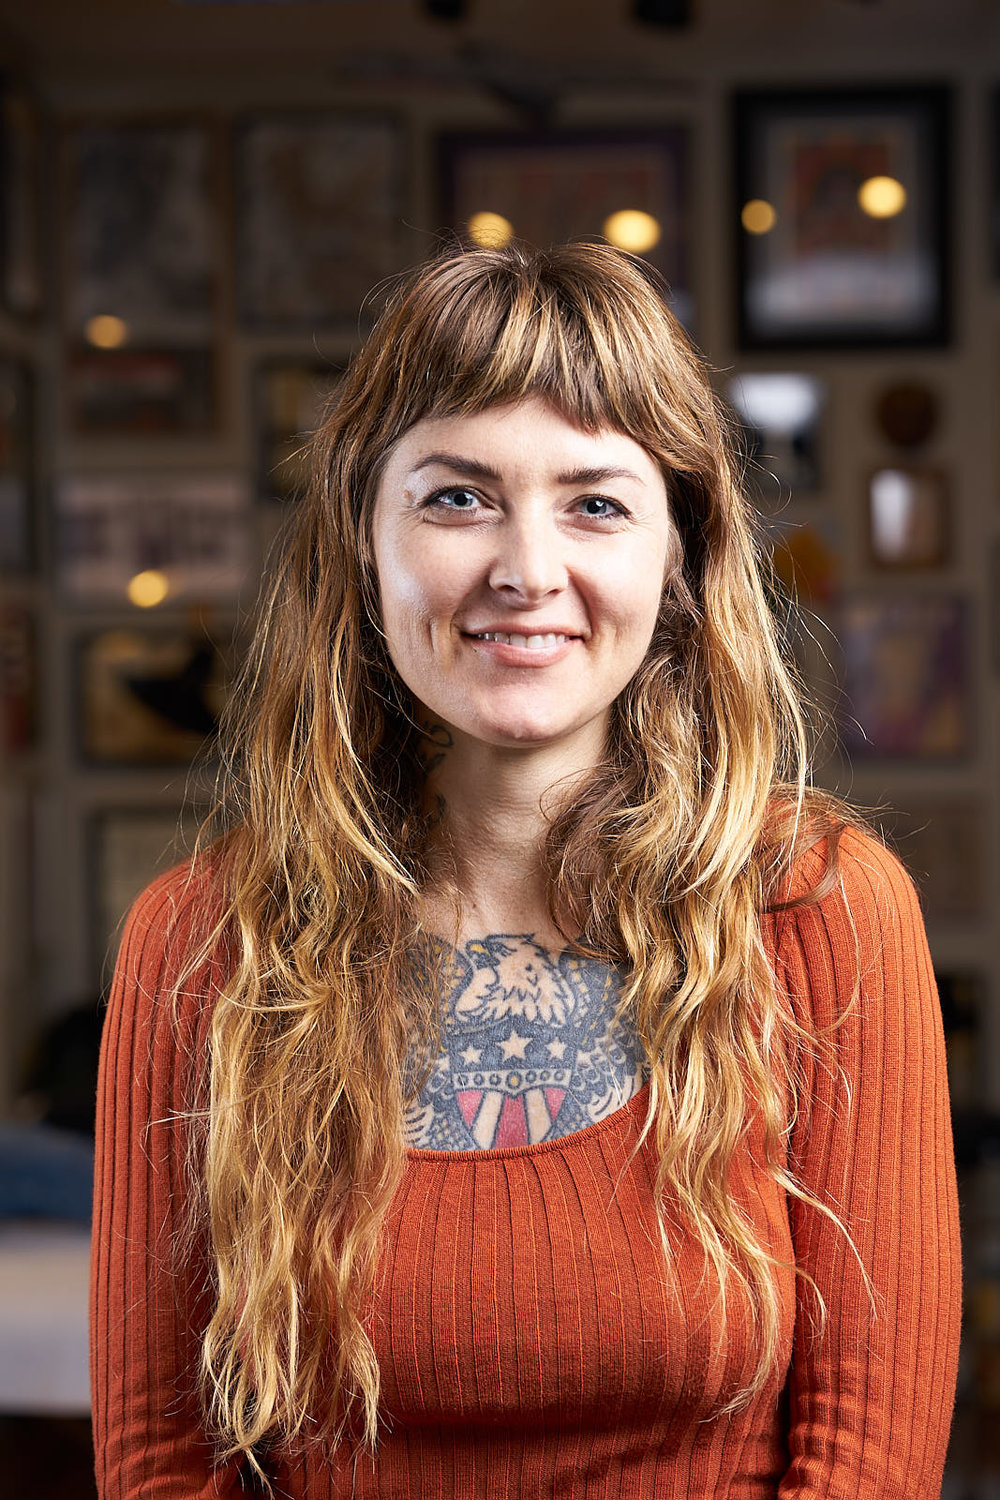 Jennalee Mahan Portrait - Tattooer at Great Wave Tattoo